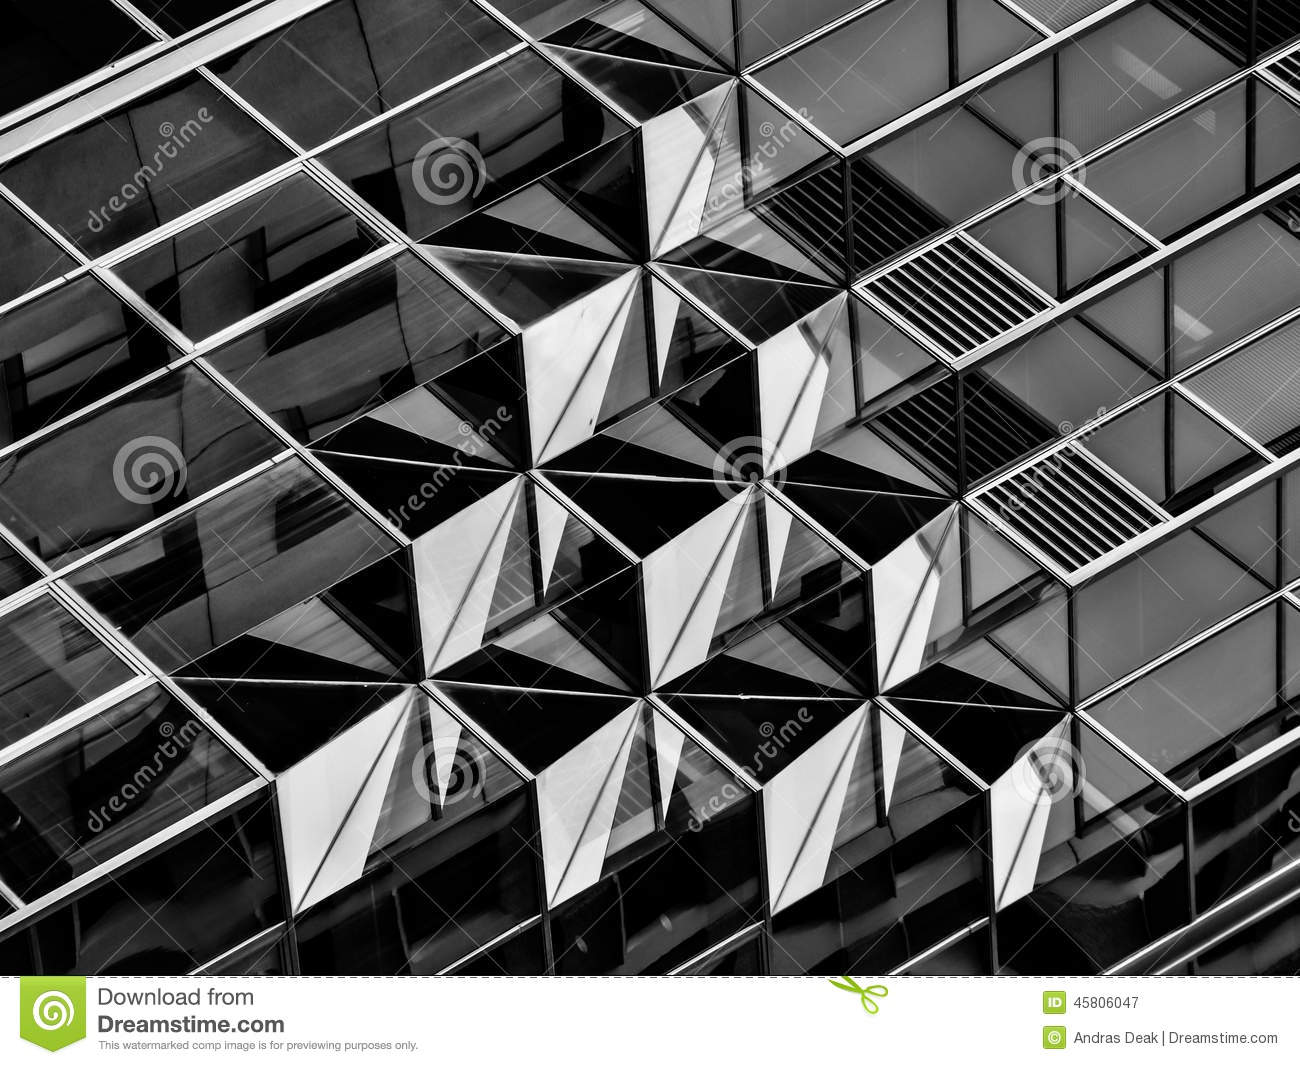 Geometry in architecture in black and white detail stock for Architecture graphique